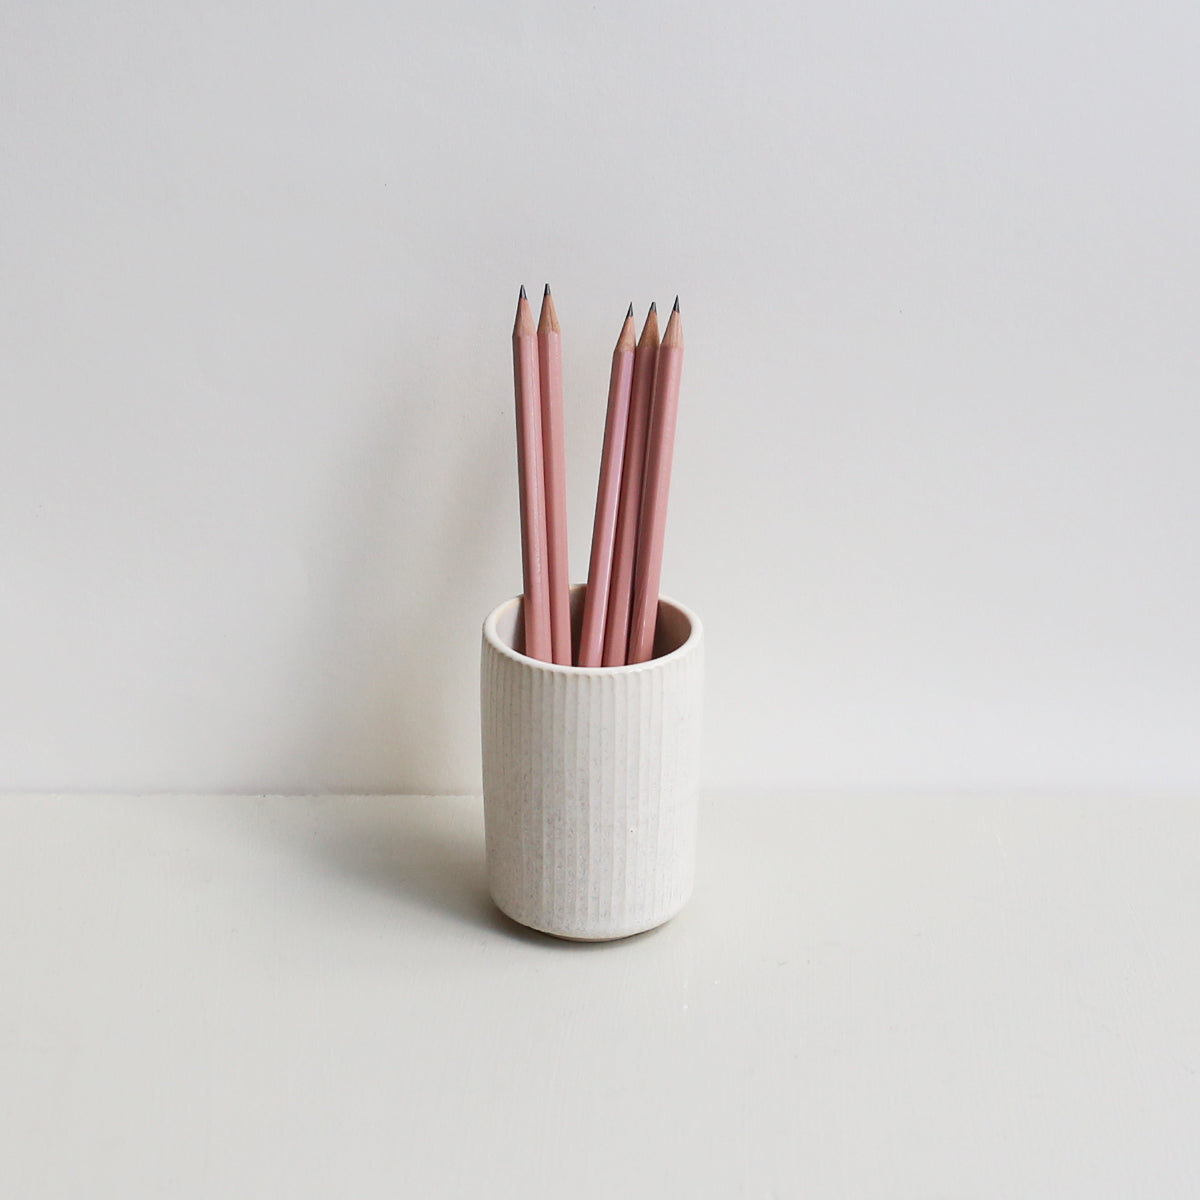 PEN HOLDER // LINES  + CEDAR WOOD PENCILS (5 PCS)